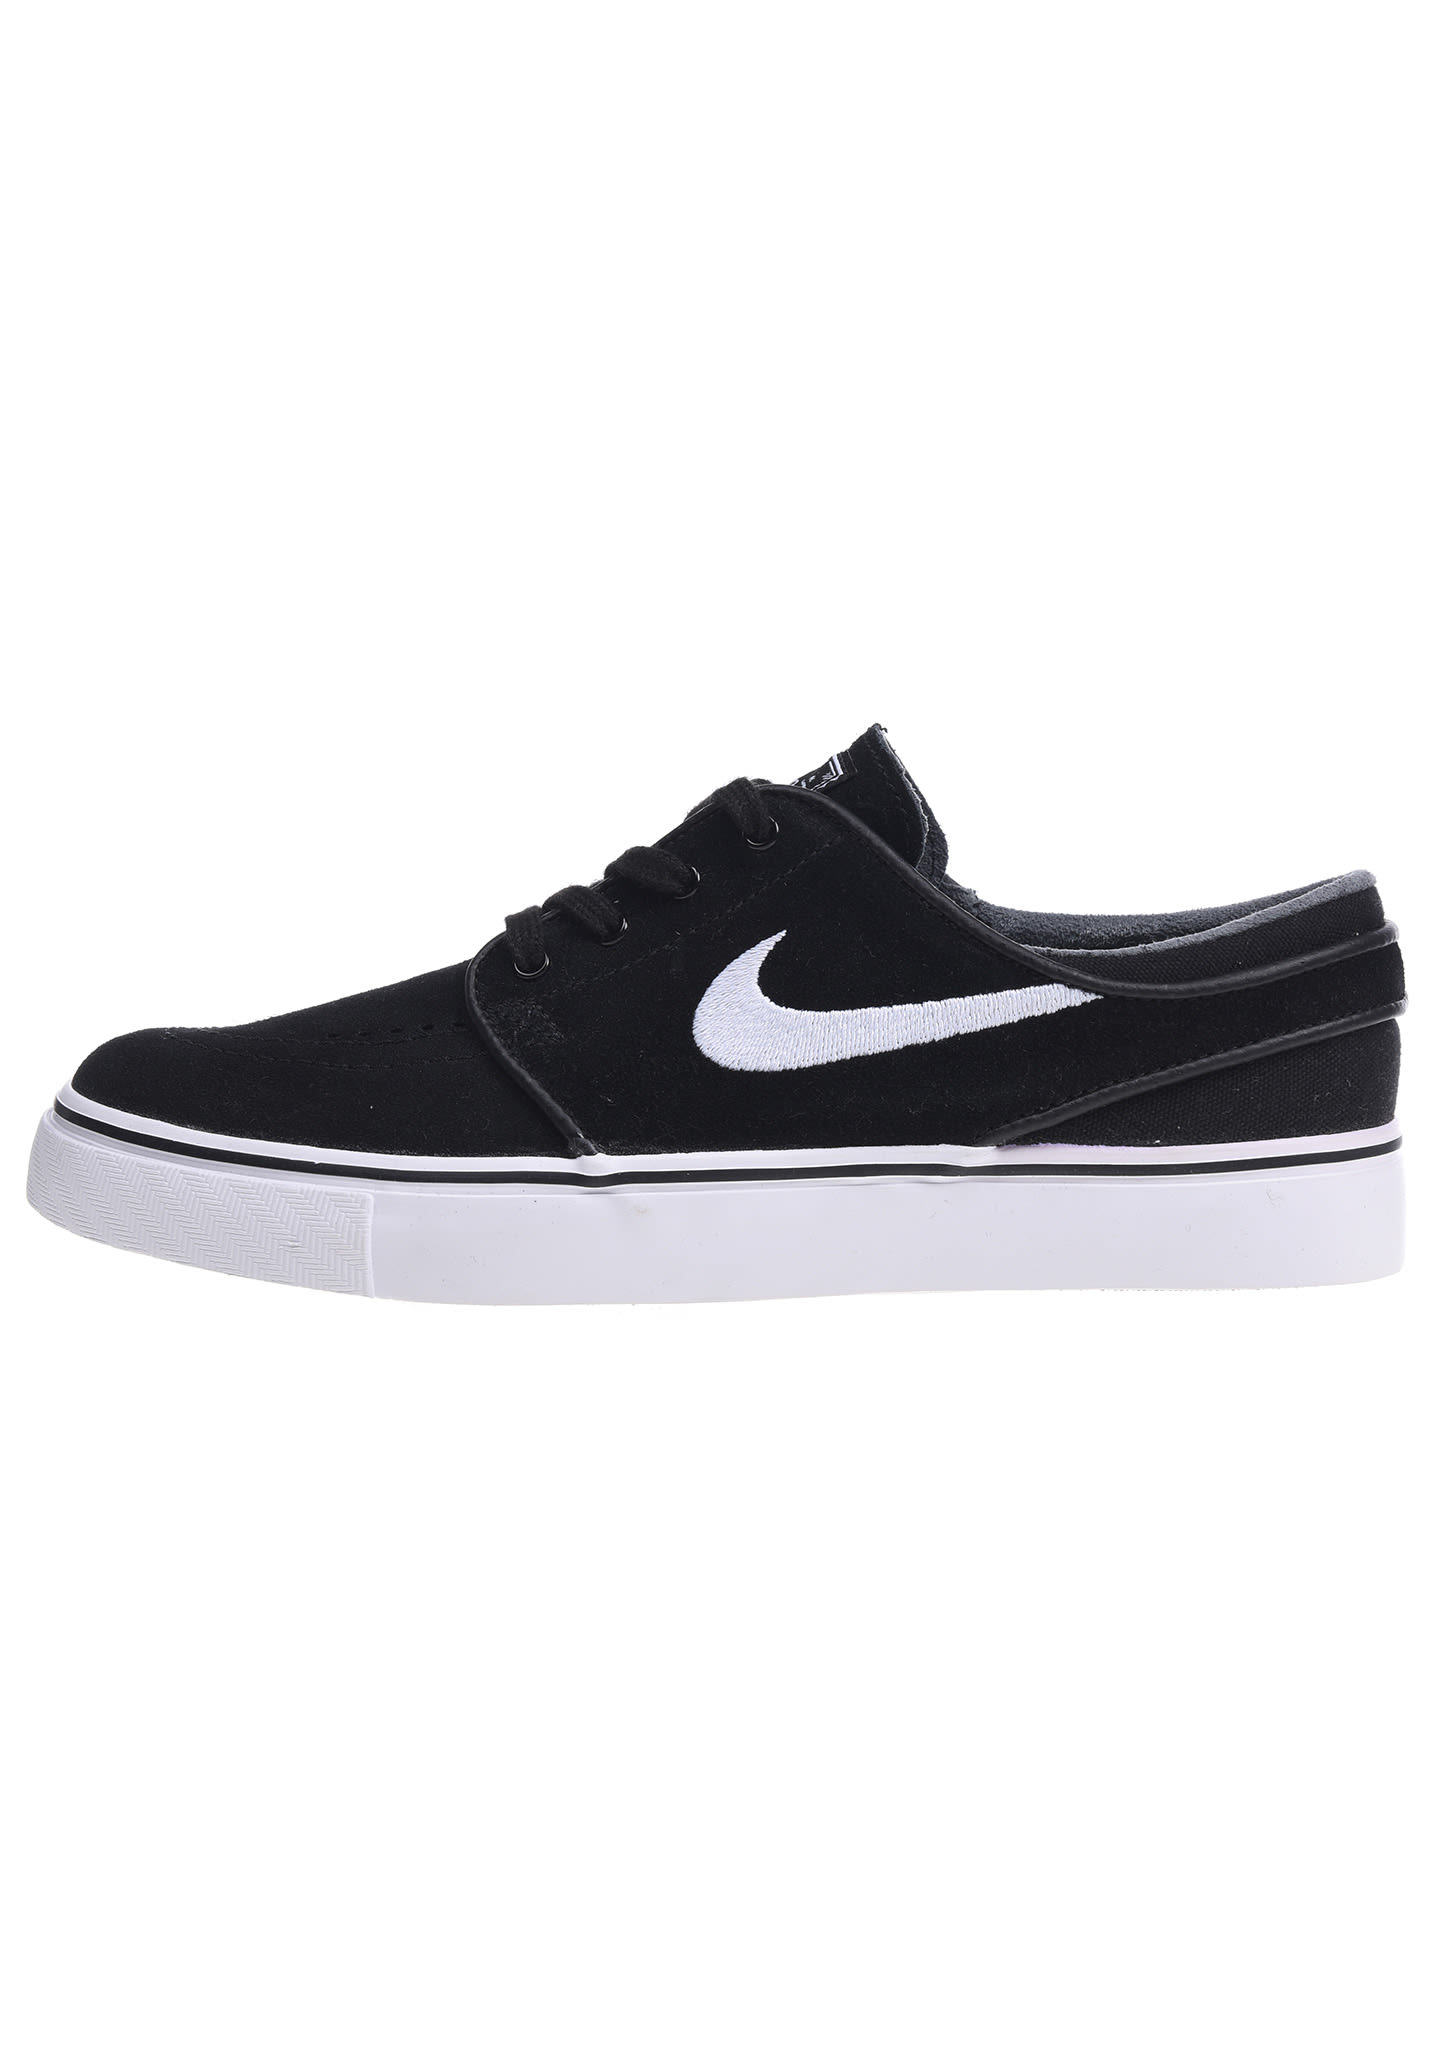 sports shoes 5fd7a b1820 NIKE SB Zoom Stefan Janoski - Sneaker - Schwarz - Planet Sports